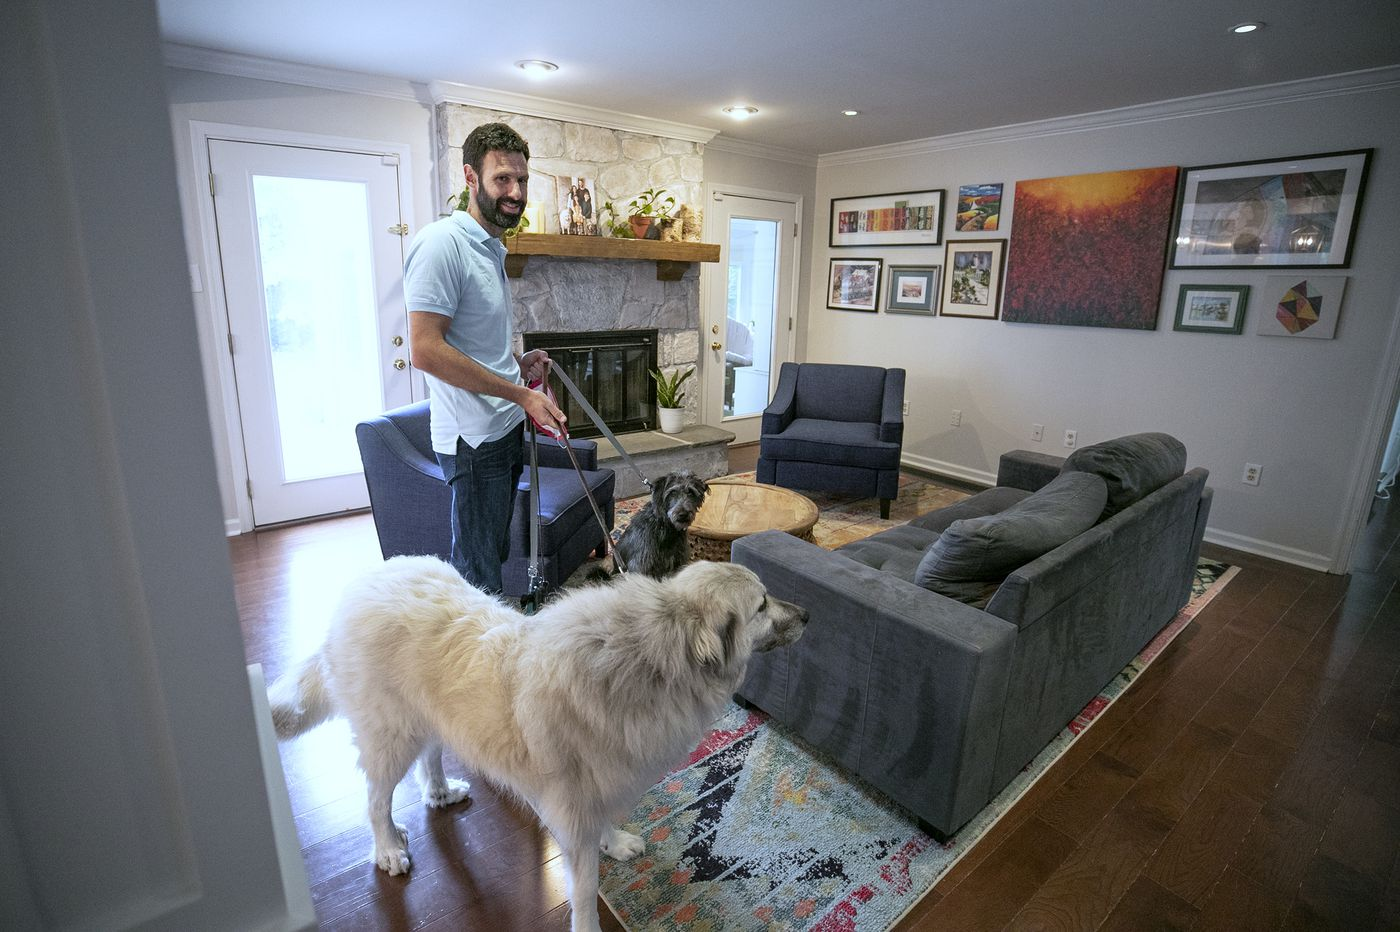 This couple are customizing their house in Wynnewood, one project at a time